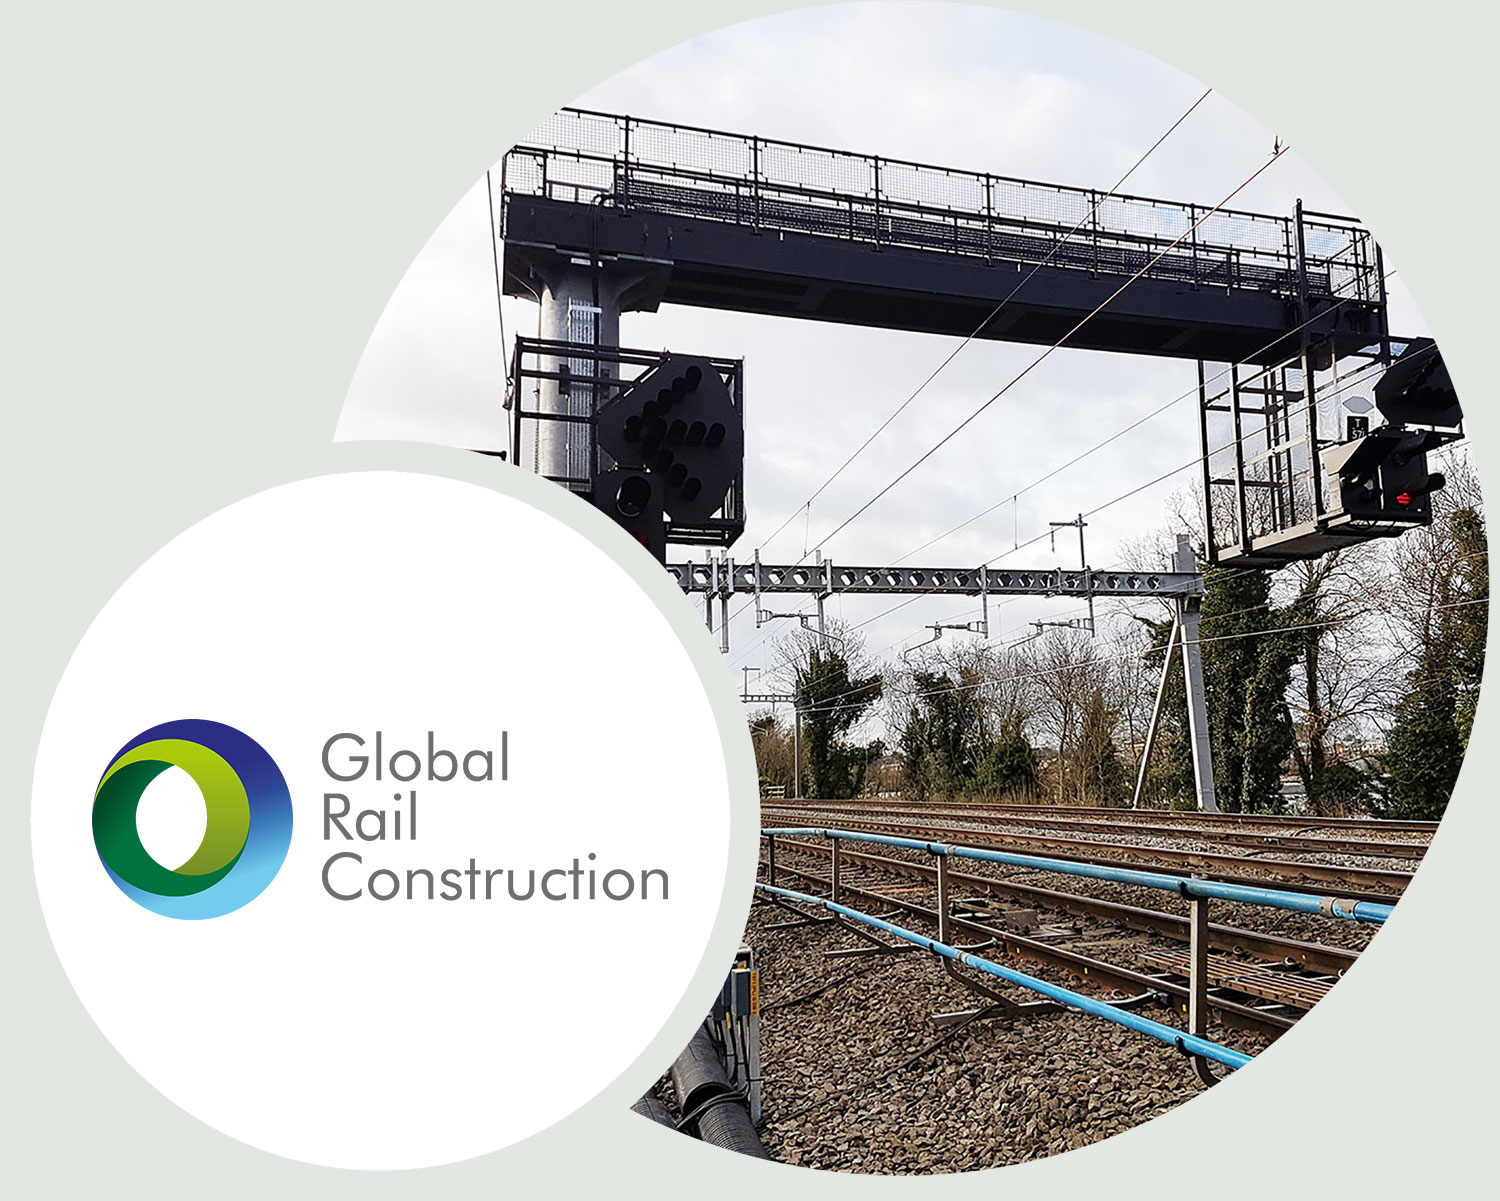 Global Rail Construction Goes GAGA